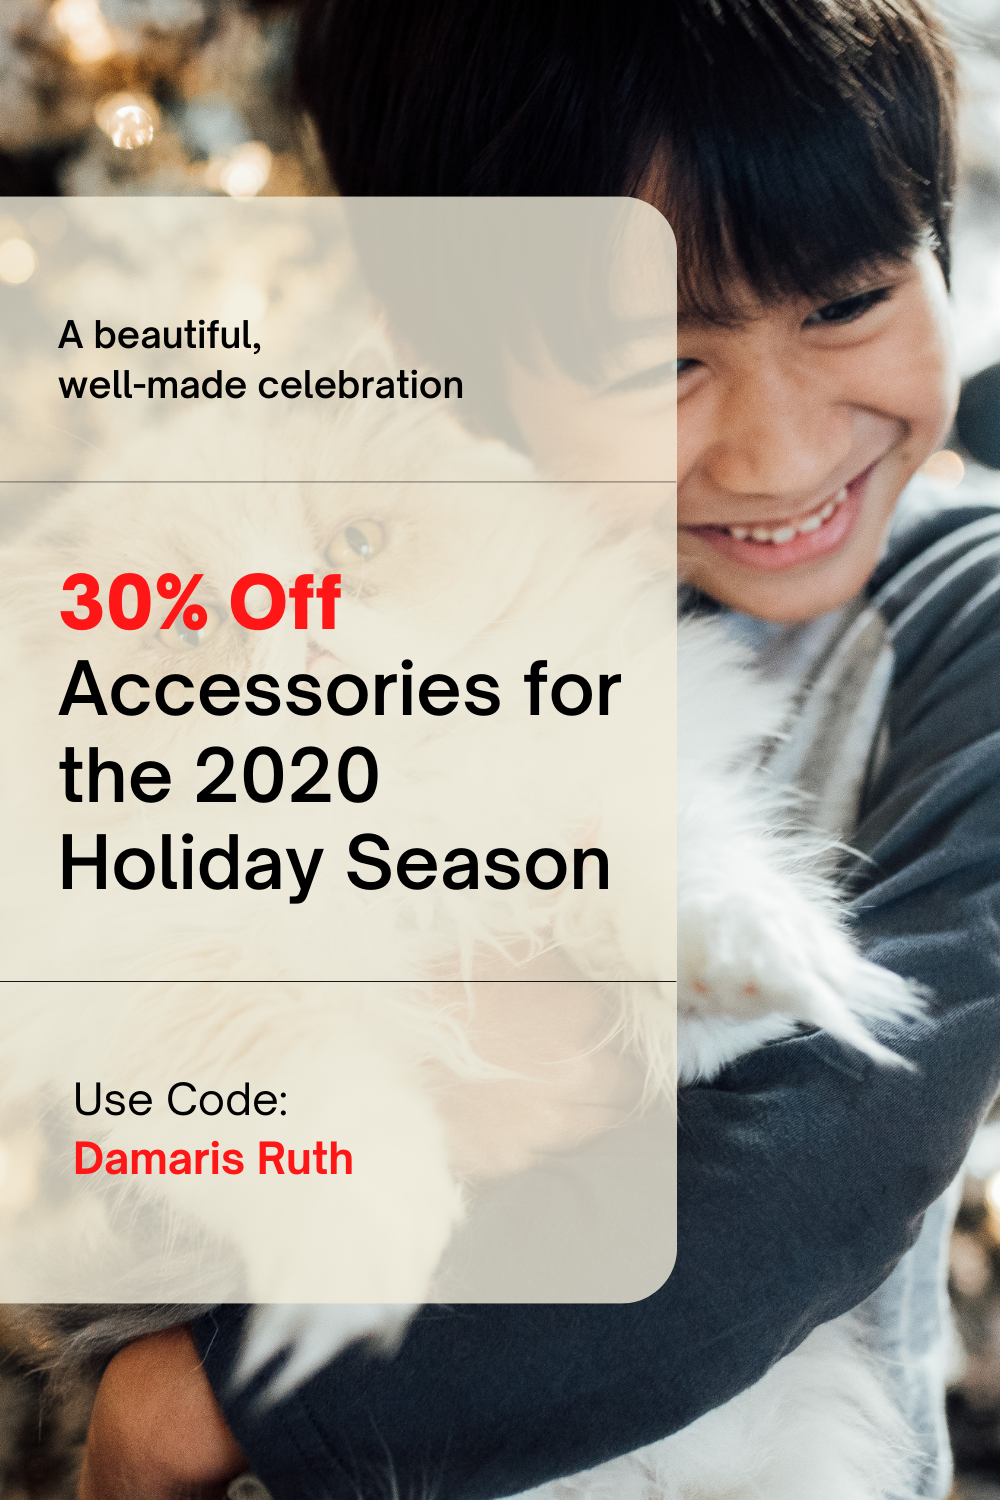 Fashion, the instant language! Use code 'Damaris Ruth' for 30% off entire order! #LeiblLaurentius #Necklaces #Bracelets #Holidays2020 #BlackFridayDeals #Discount2020